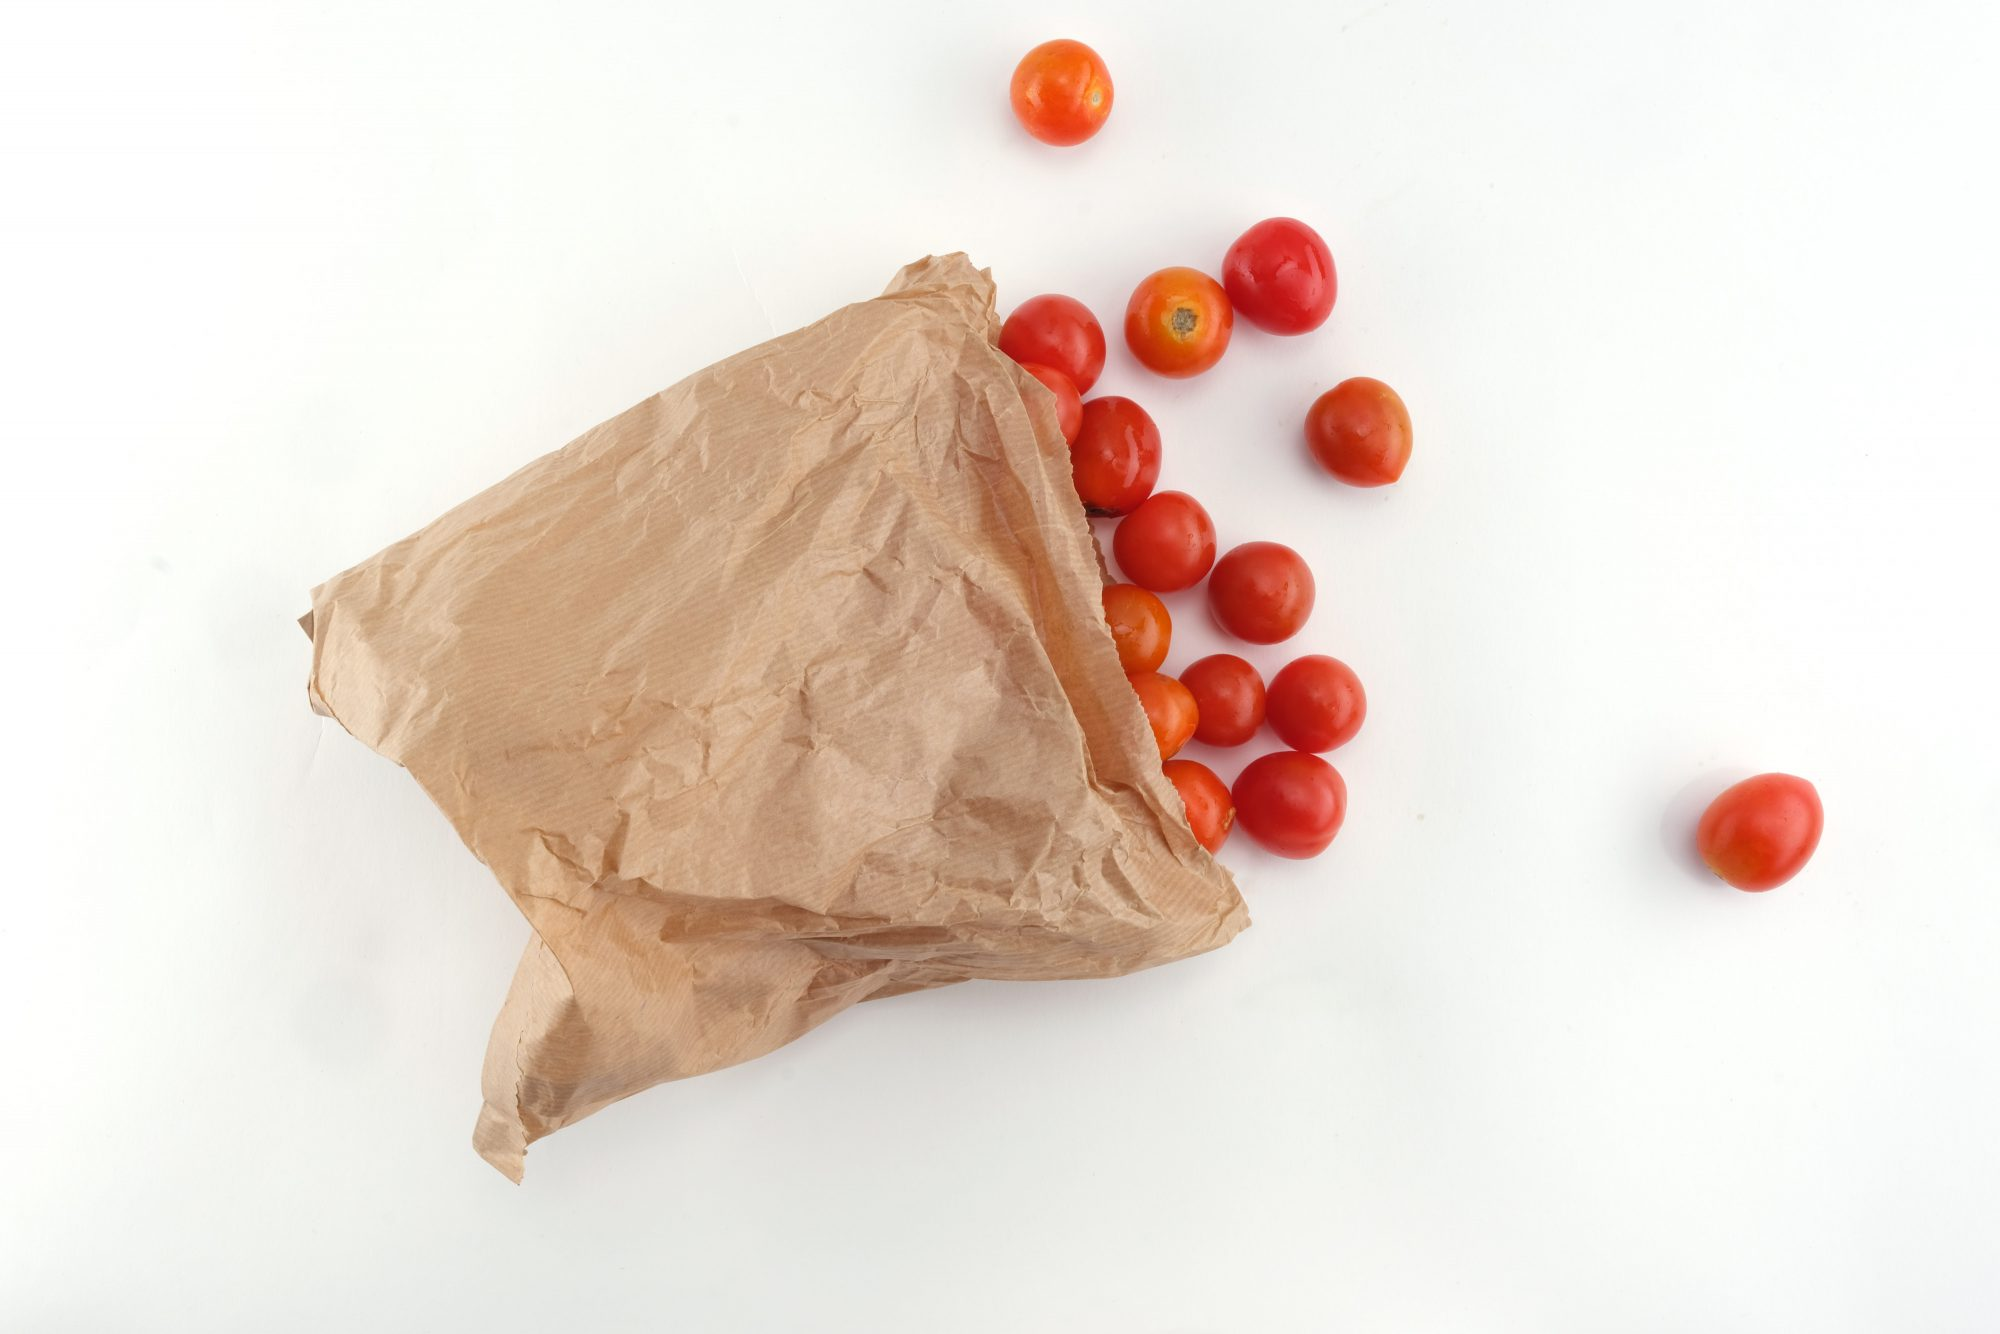 Tomatoes in paper bag Getty 5/11/20